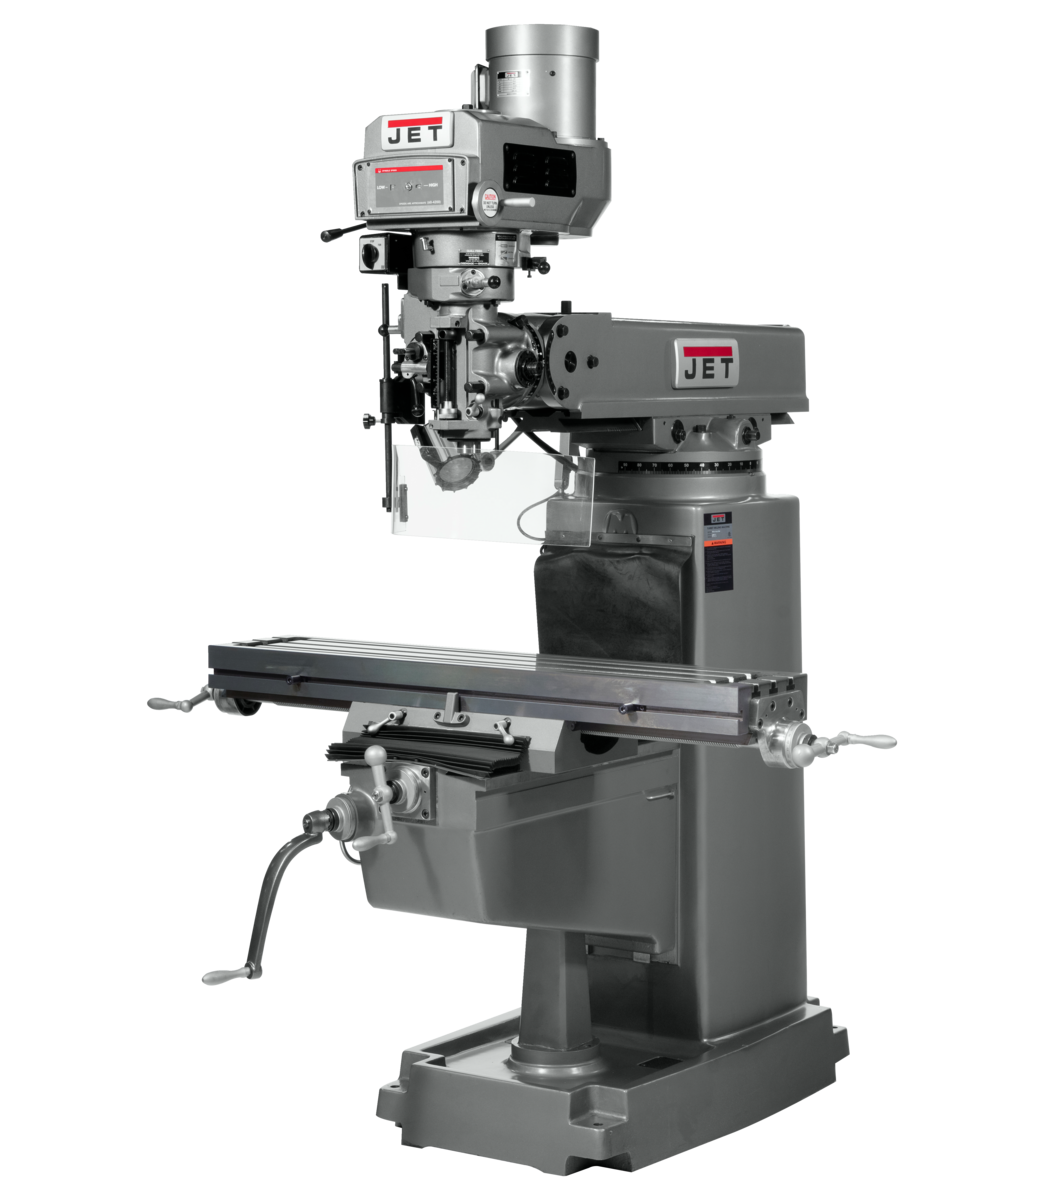 JTM-1050VS2 Mill With 3-Axis ACU-RITE 203 DRO (Knee) With X-Axis Powerfeed